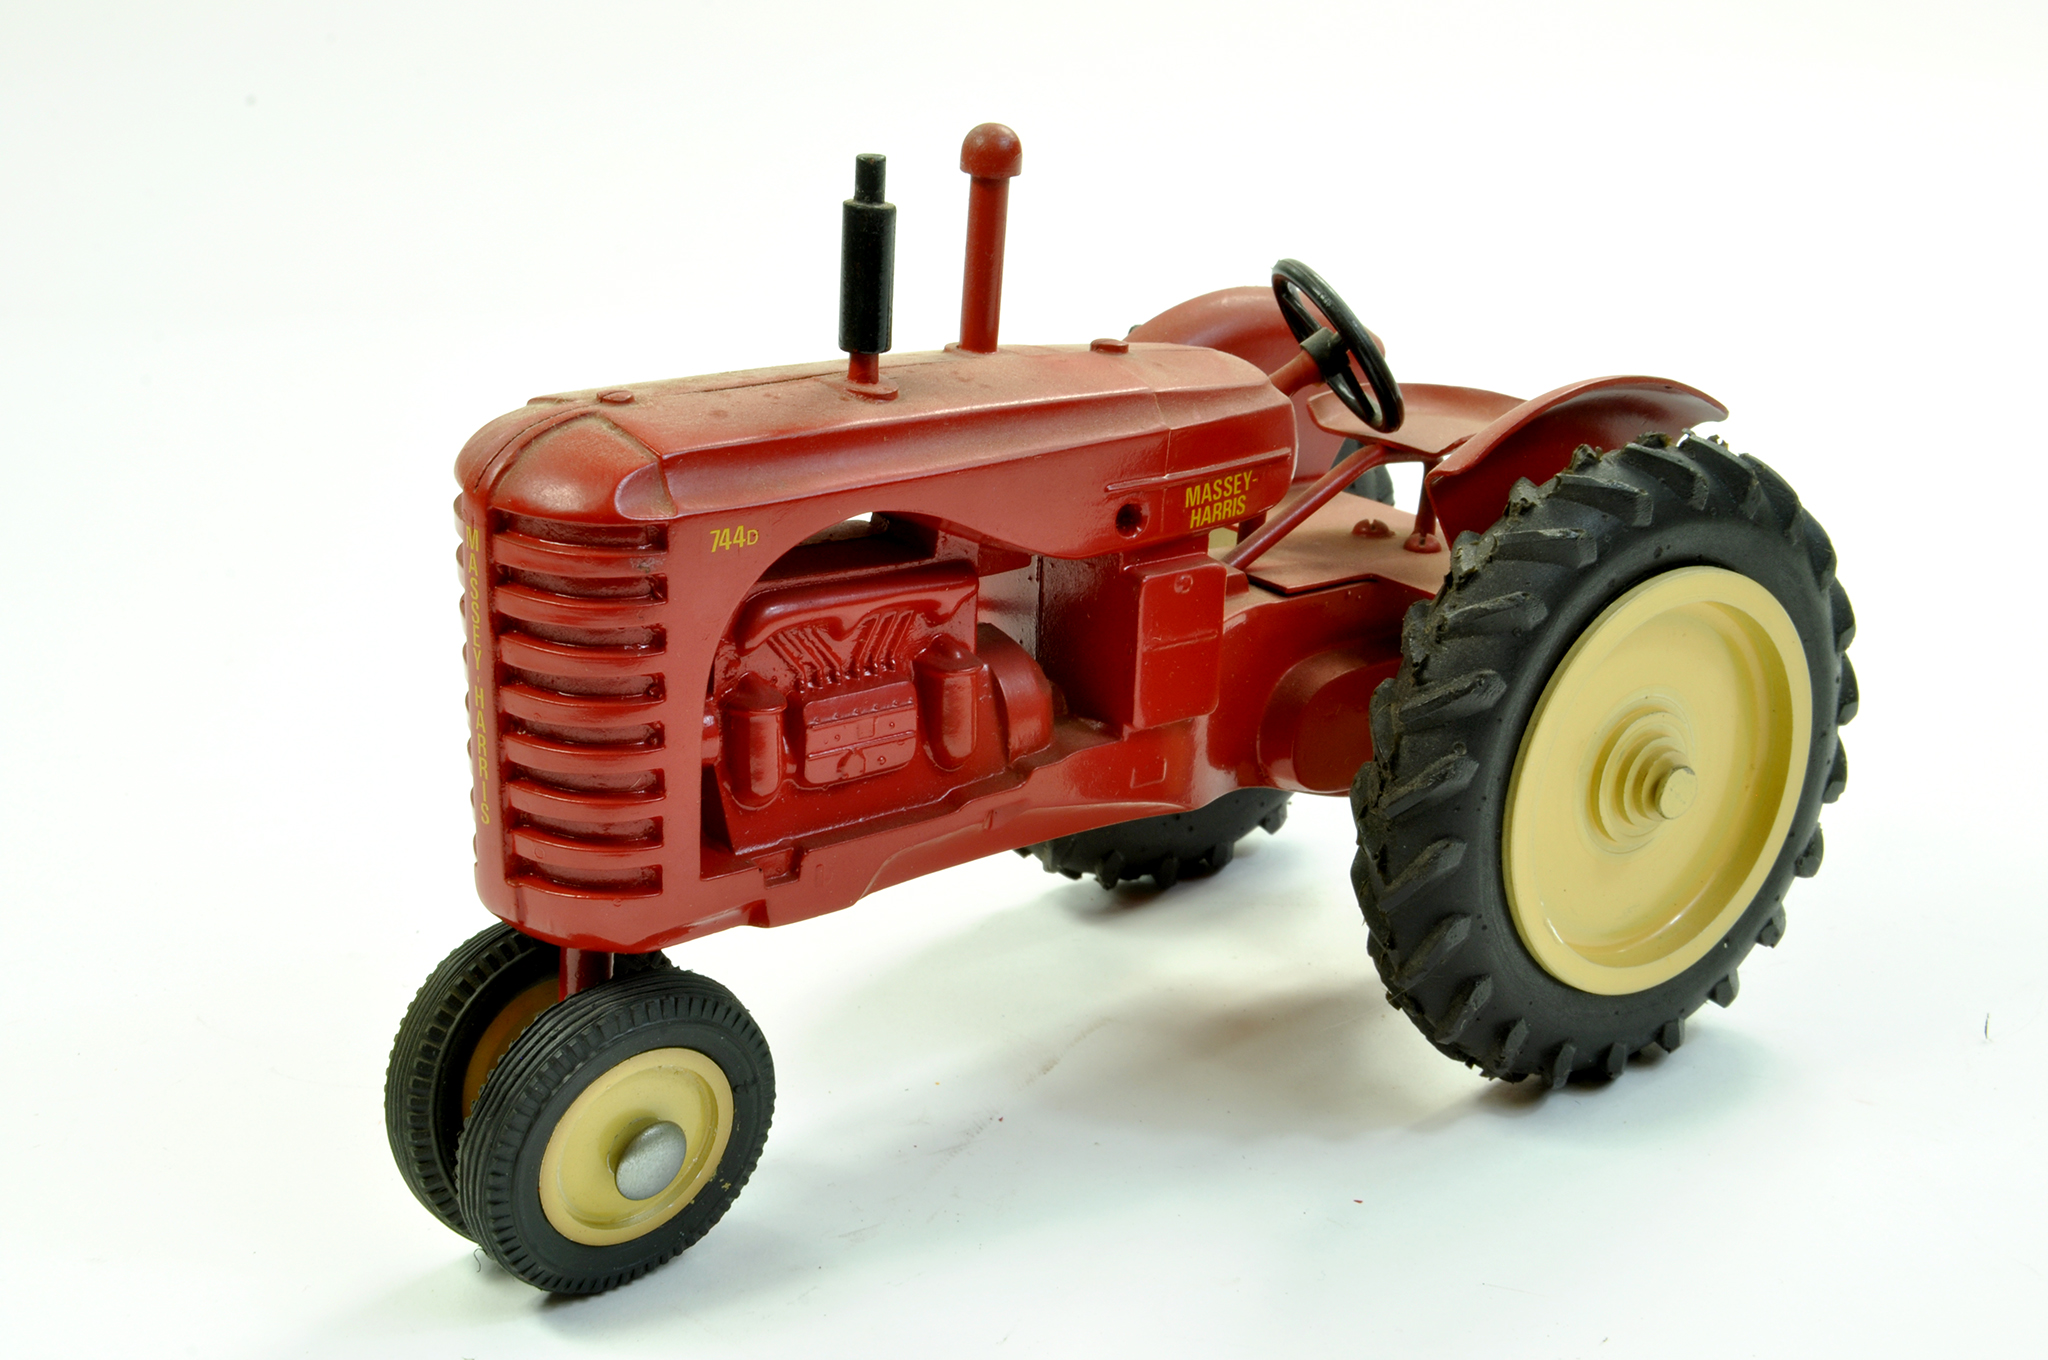 Lot 29 - Marbil Models 1/16 Massey Harris 744D Tractor on Row Crops. Generally Excellent, a little dusty.